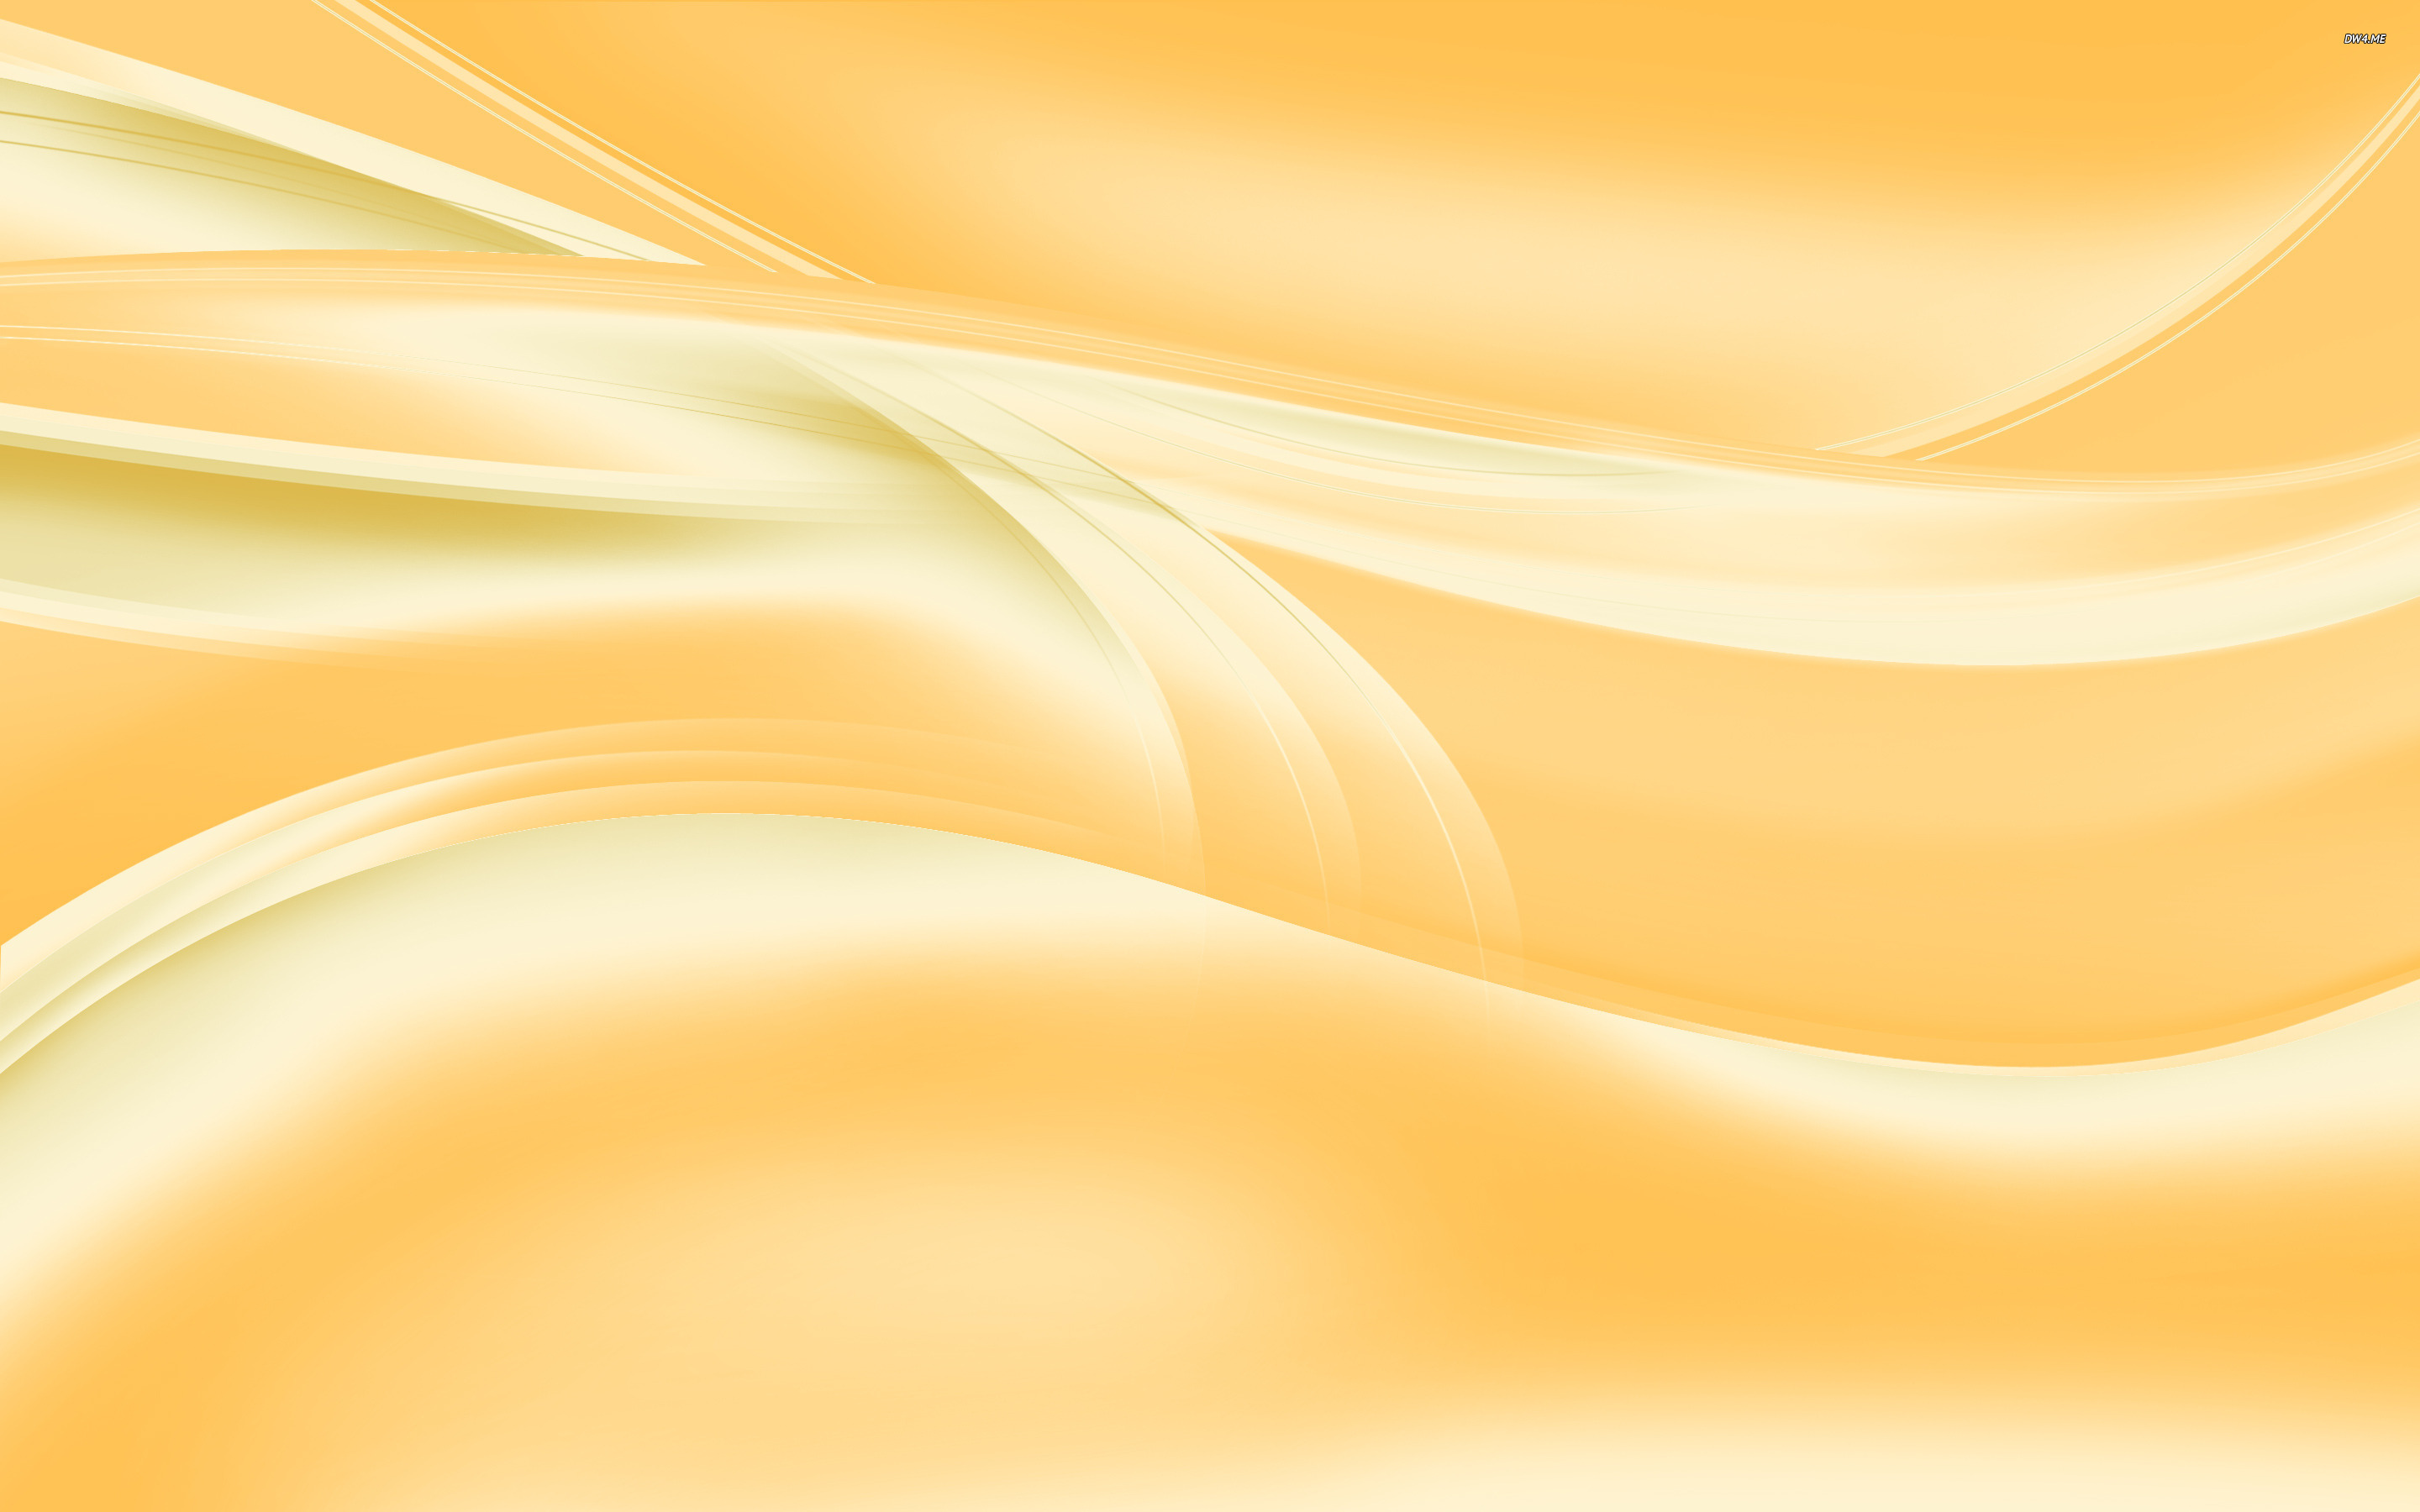 Golden curves wallpaper   Abstract wallpapers   1553 2880x1800